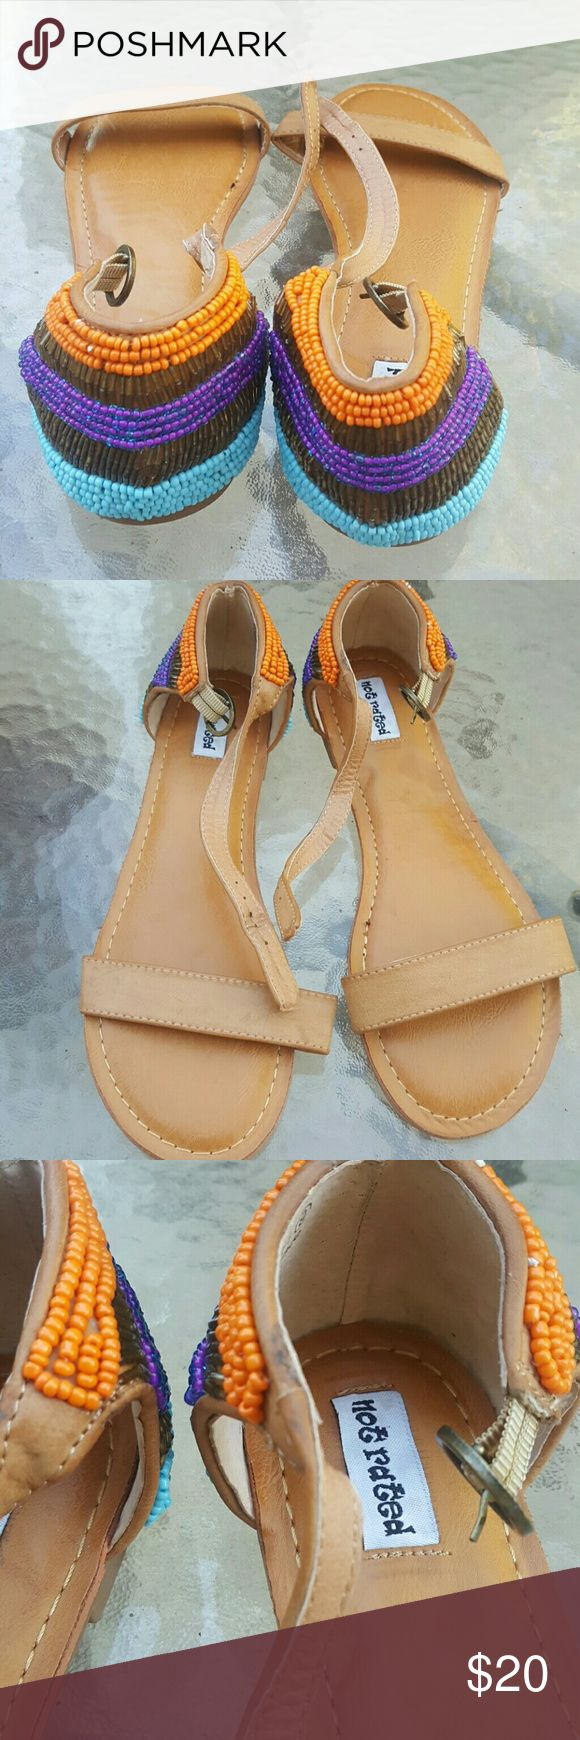 Not Rated Sandals In used condition no damage Not Rated Shoes Sandals